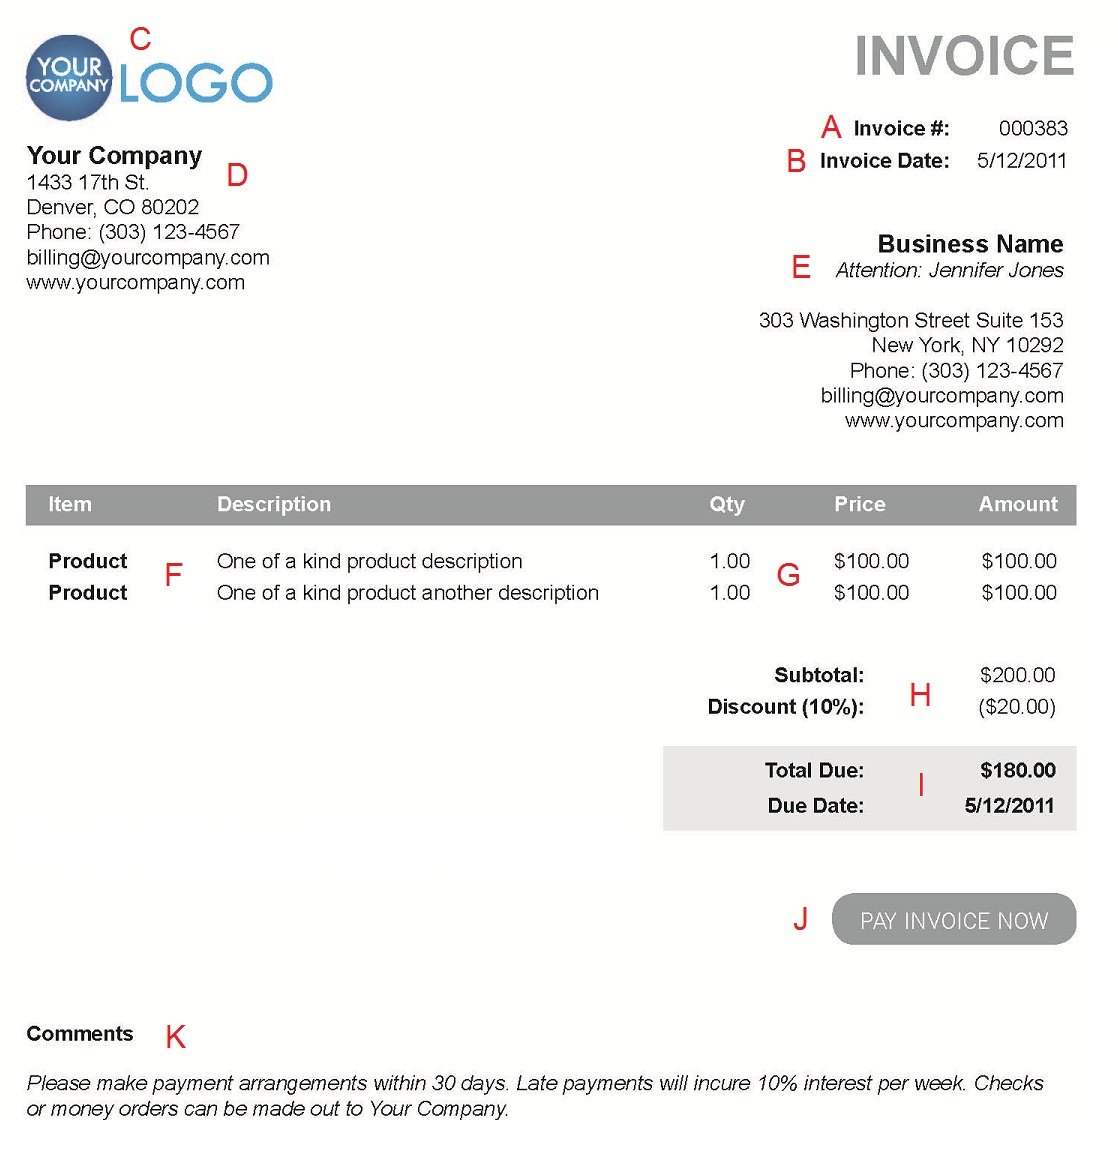 Floobydustus  Prepossessing The  Different Sections Of An Electronic Payment Invoice With Fair A  With Enchanting Invoice Template In Excel Free Download Also School Invoice Template In Addition Proforma Invoice Doc And Google Invoice Template Free As Well As Commercial Invoice Forms Additionally Pages Invoice Templates From Paysimplecom With Floobydustus  Fair The  Different Sections Of An Electronic Payment Invoice With Enchanting A  And Prepossessing Invoice Template In Excel Free Download Also School Invoice Template In Addition Proforma Invoice Doc From Paysimplecom